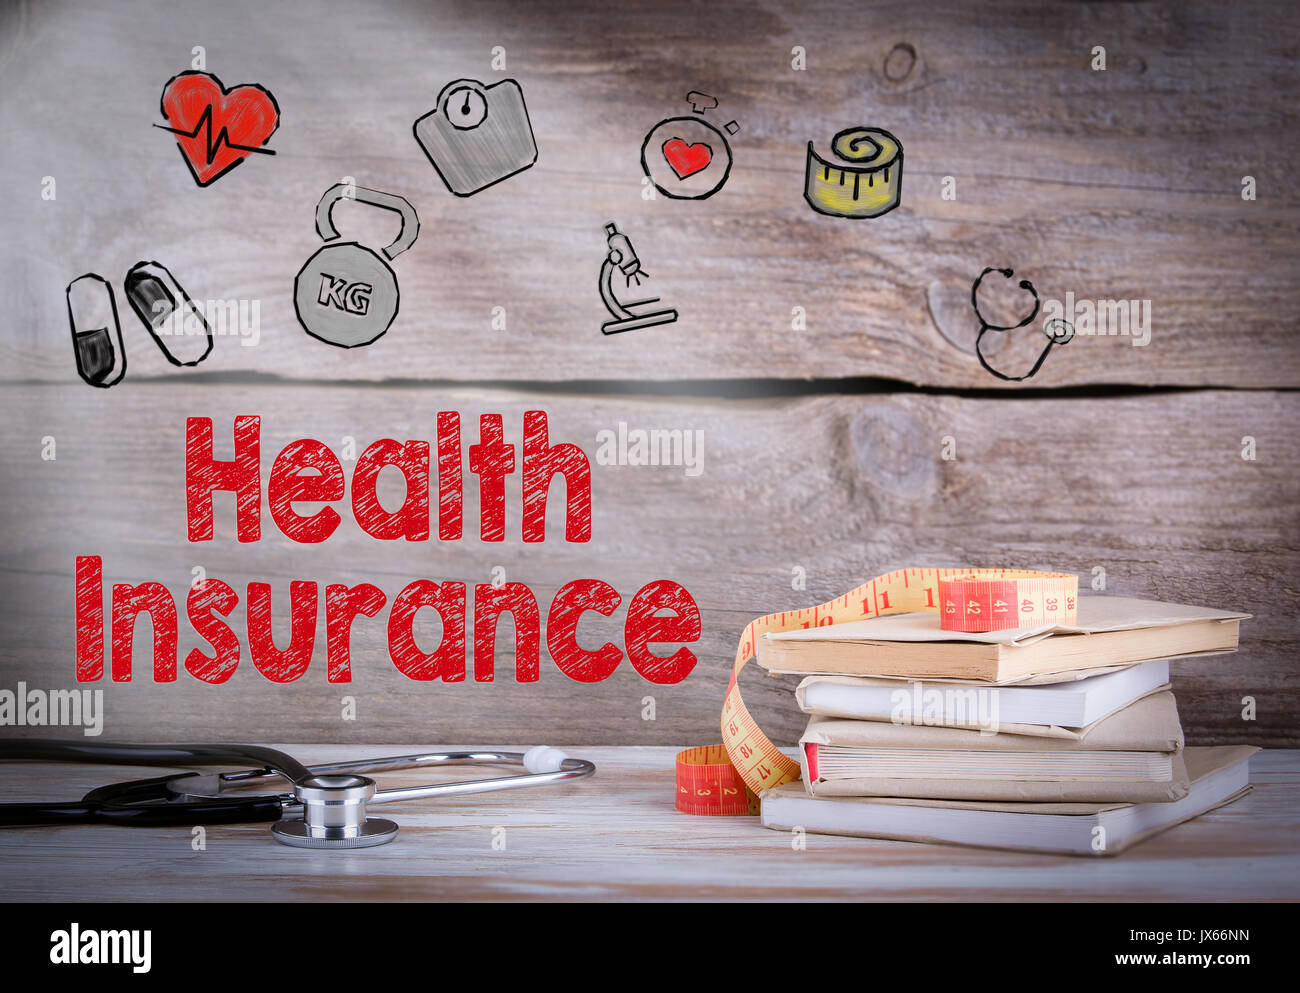 Health Insurance Concept. Stack of books and a stethoscope on a wooden background. - Stock Image